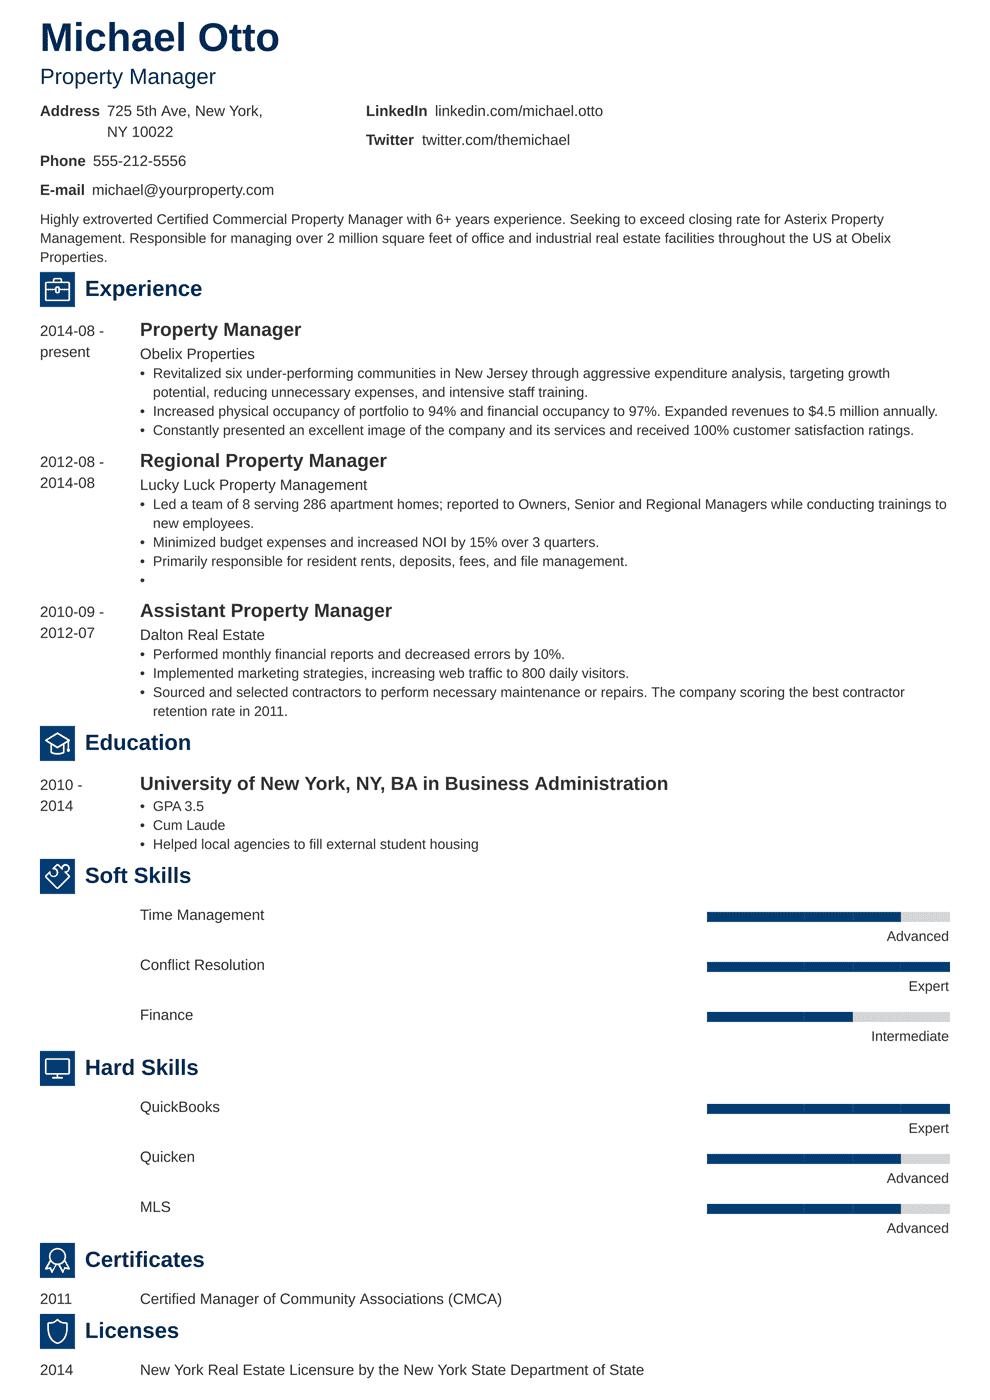 Property Manager Resume: Sample & Complete Guide [20+ Examples]